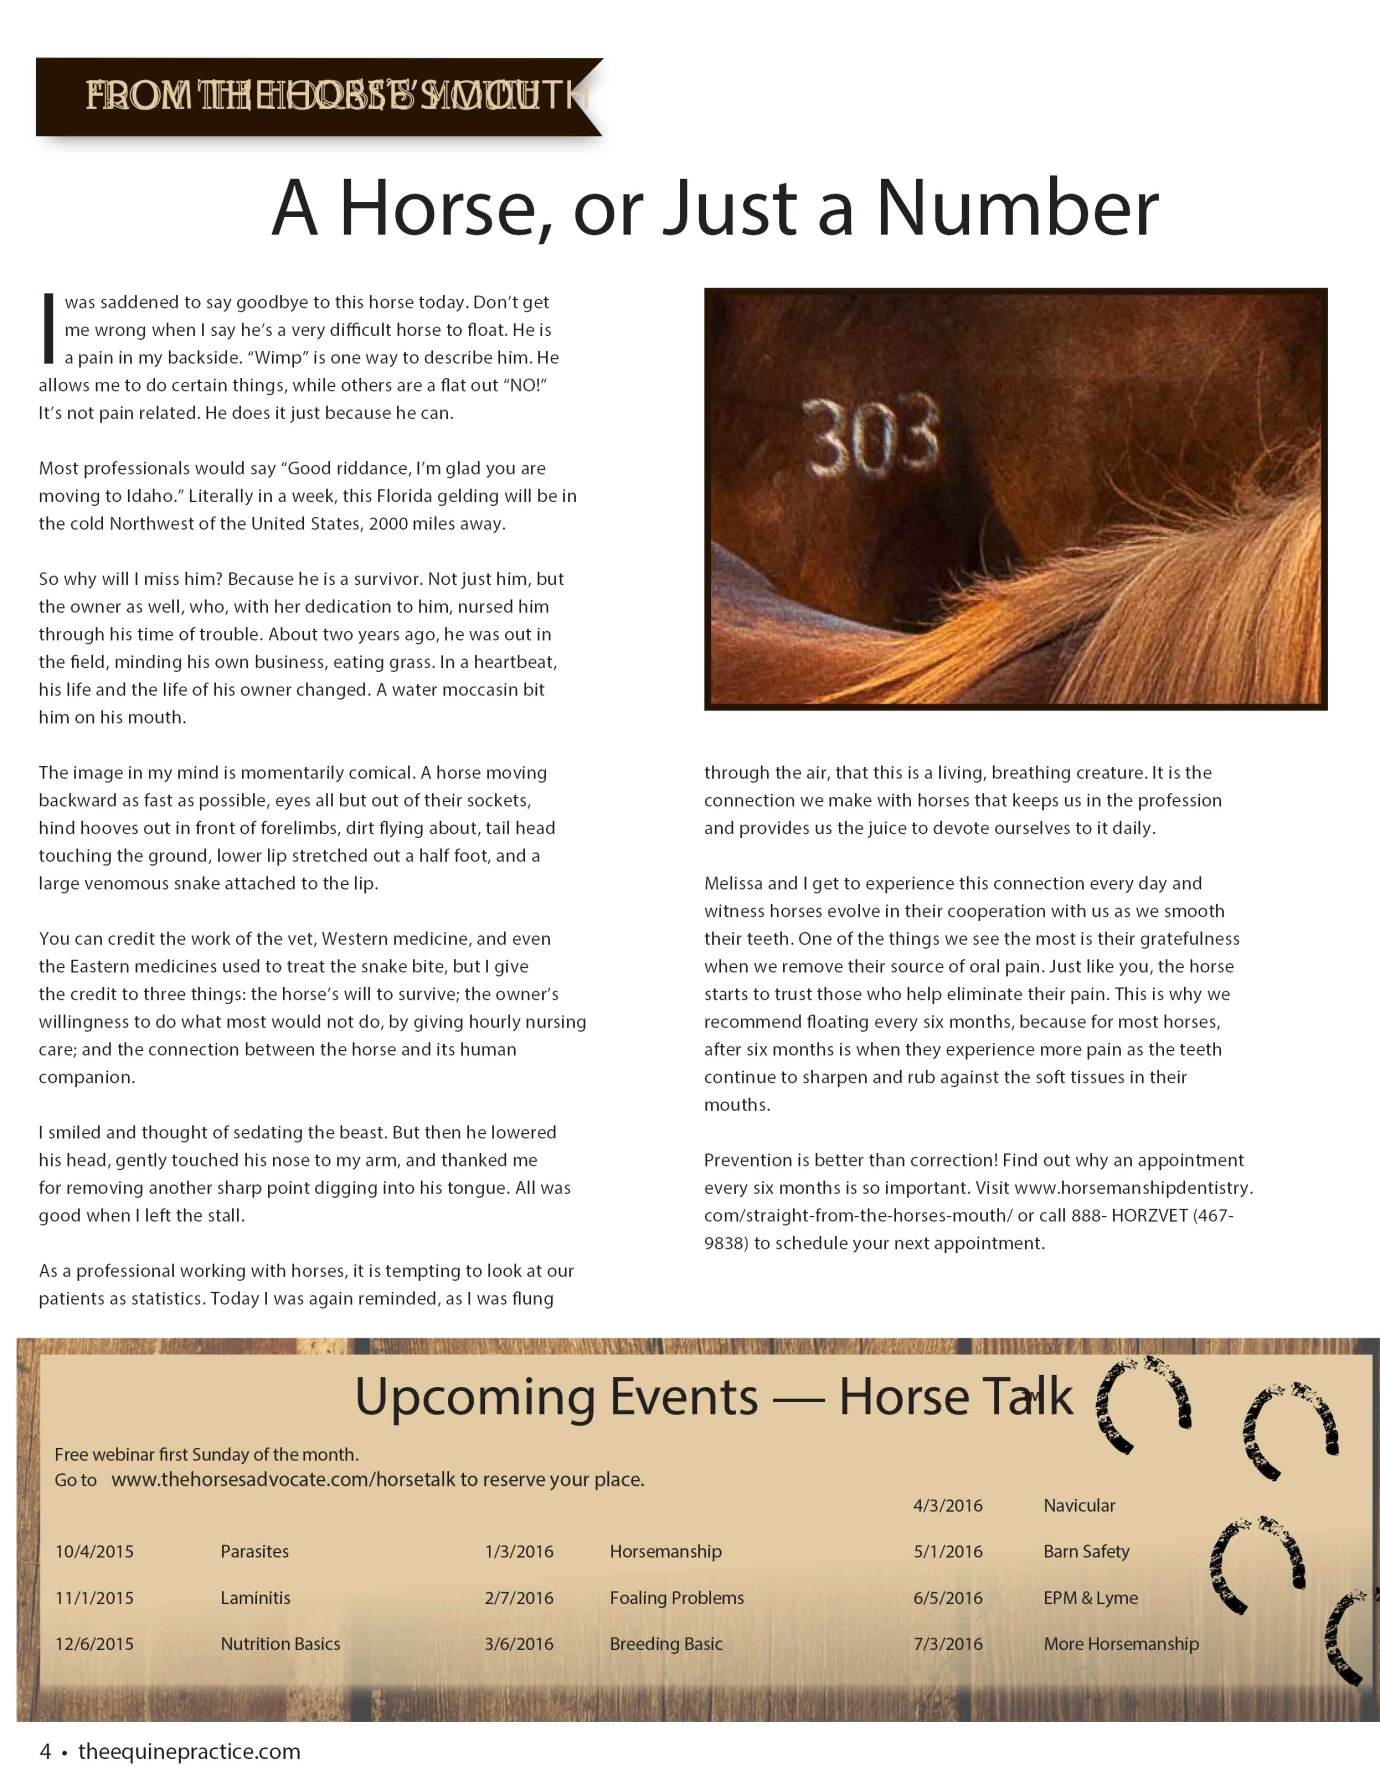 The Equine Practice Rounds™ November 2015 page 2 of 4